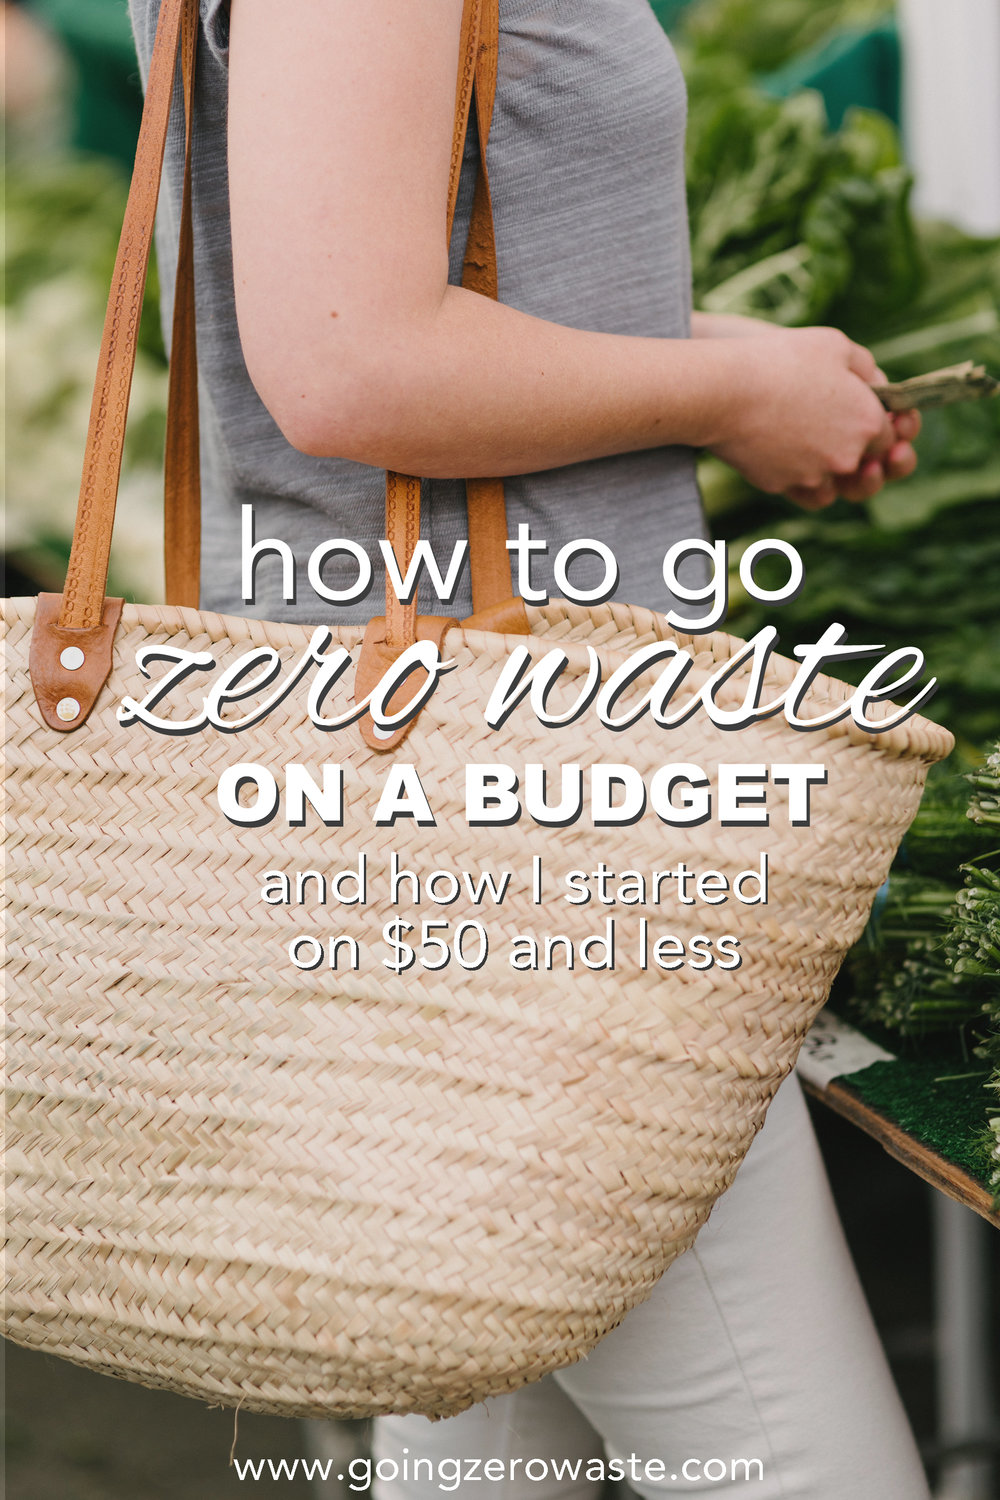 How to go zero waste on a budget with fifty dollars or less from www.goingzerowaste.com #zerowaste